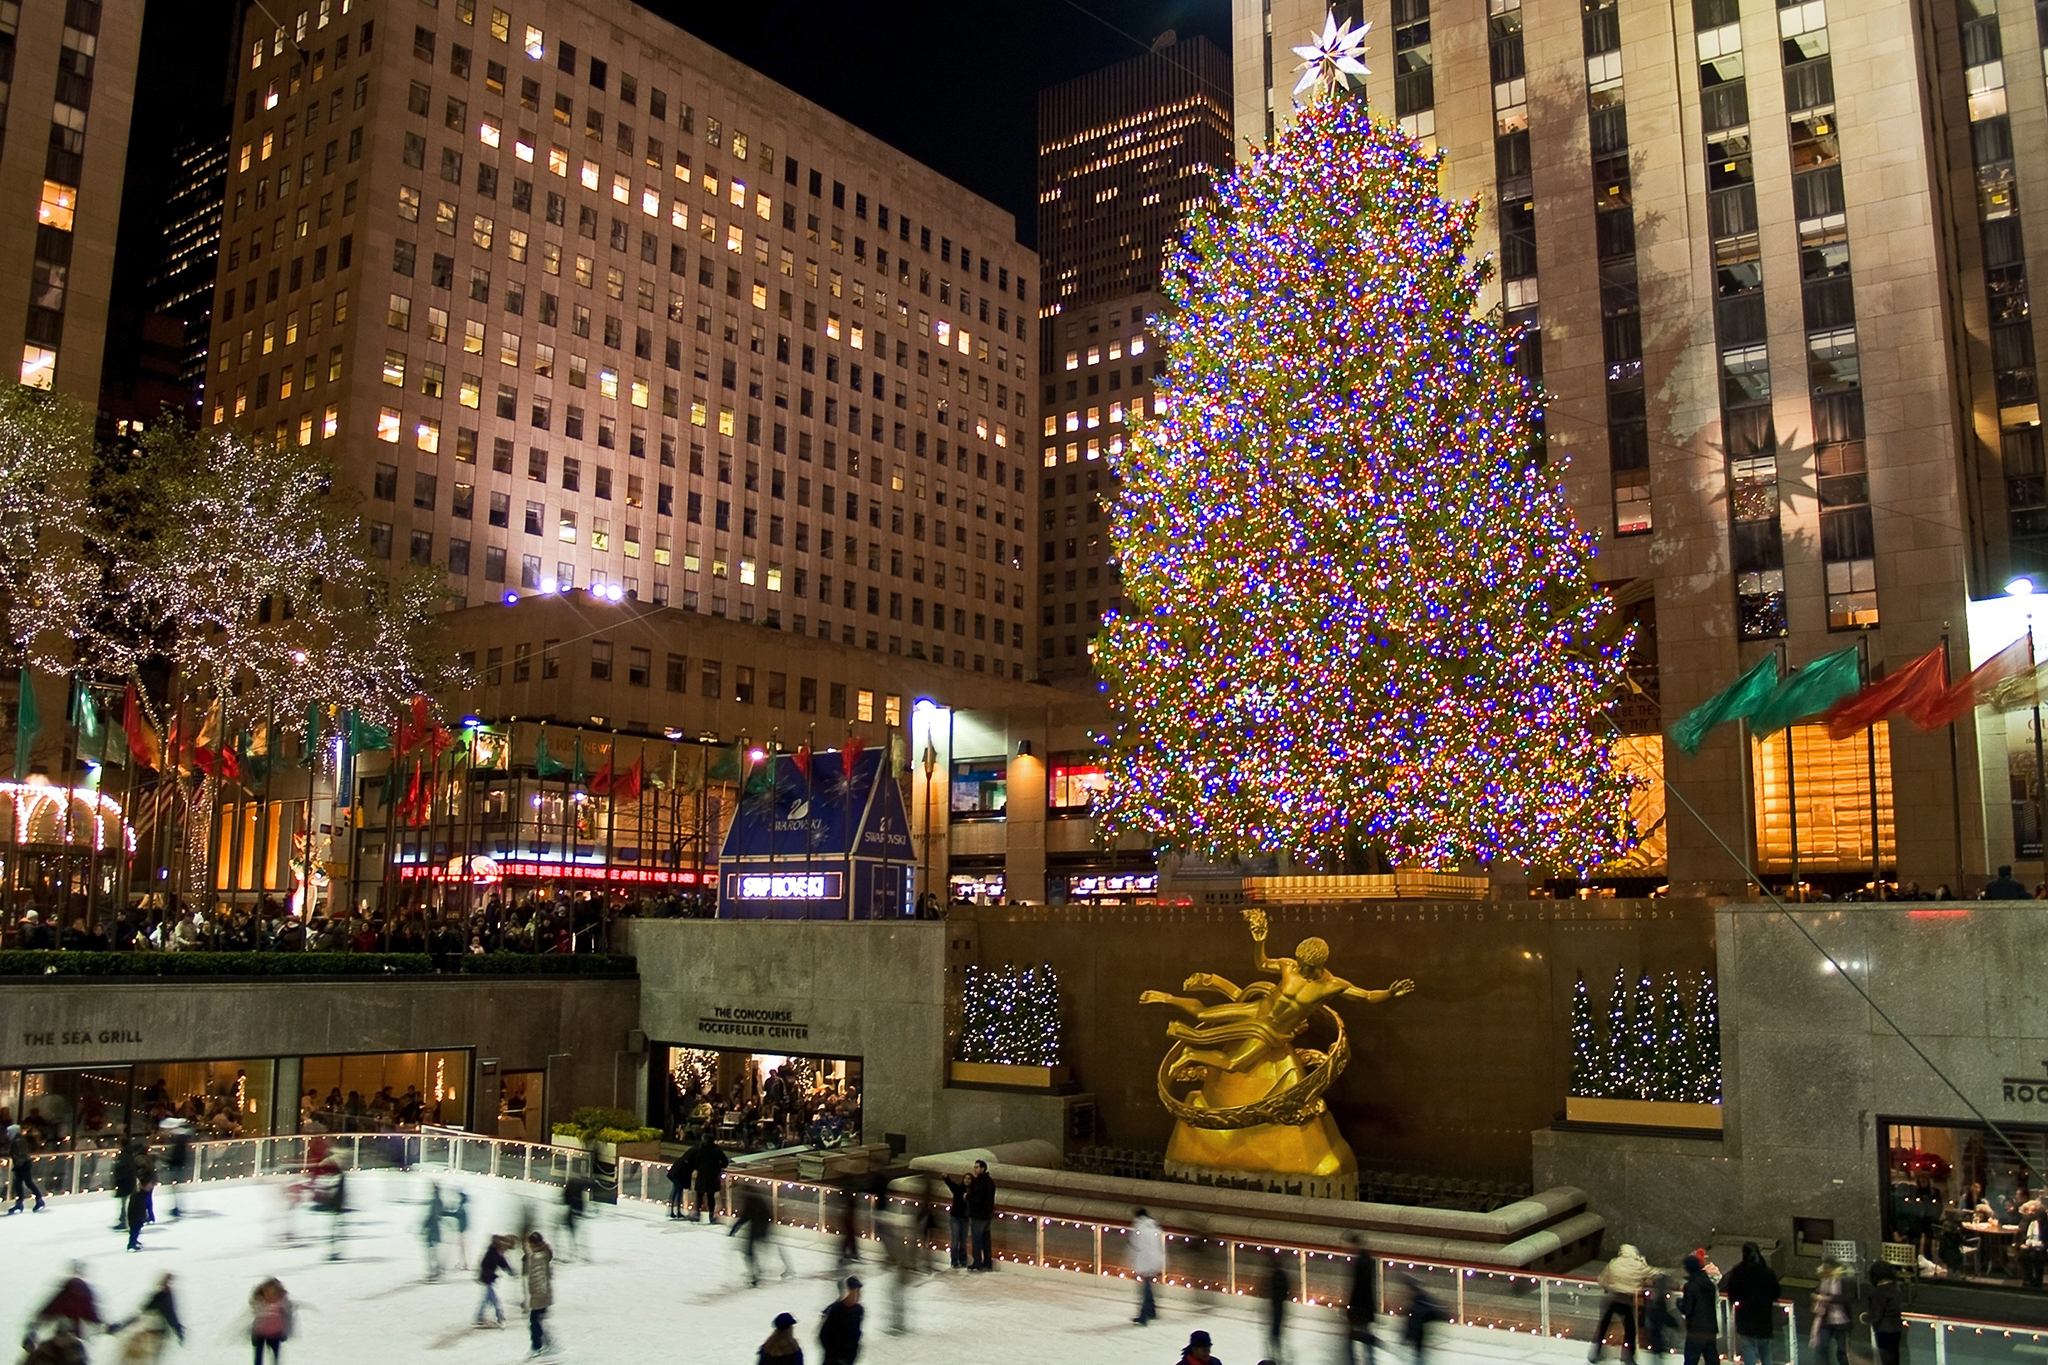 Camera Rockefeller Center : Photos of the rockefeller center christmas tree through the years